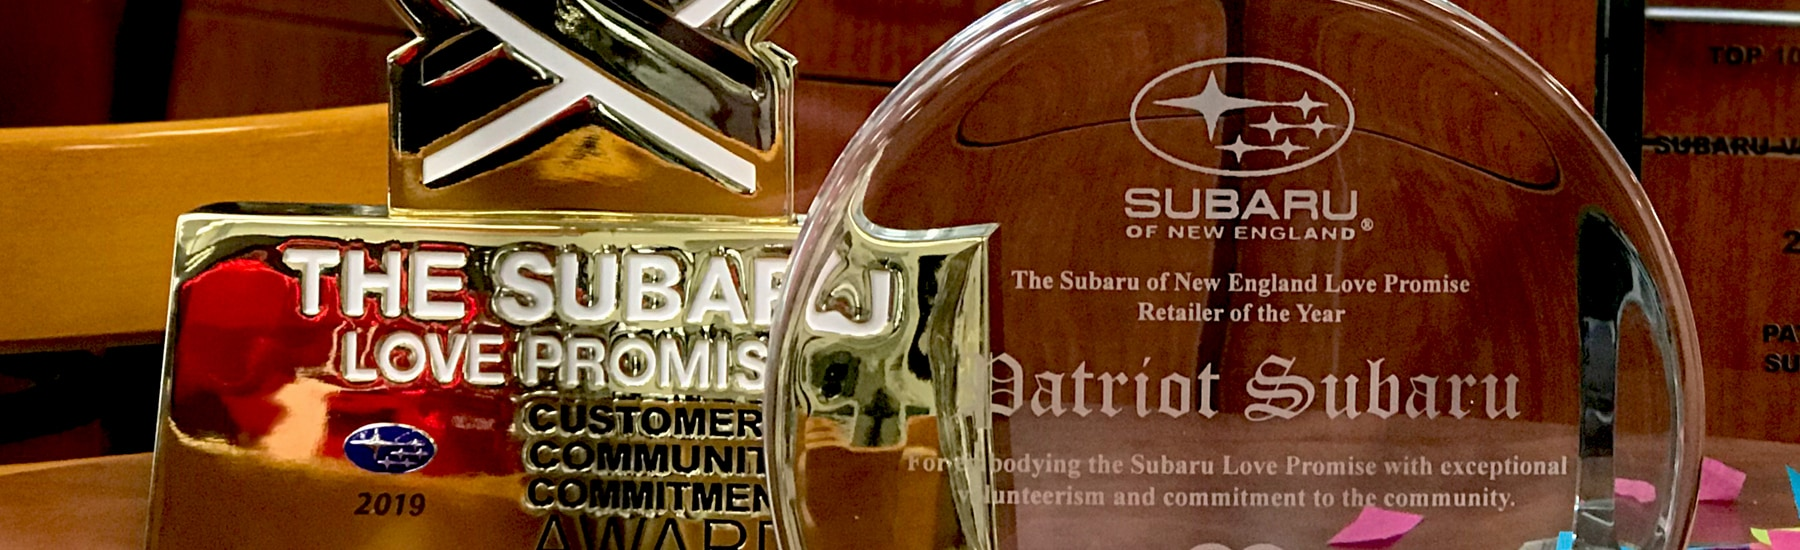 Patriot Subaru: Subaru Dealership near Portland ME | Saco